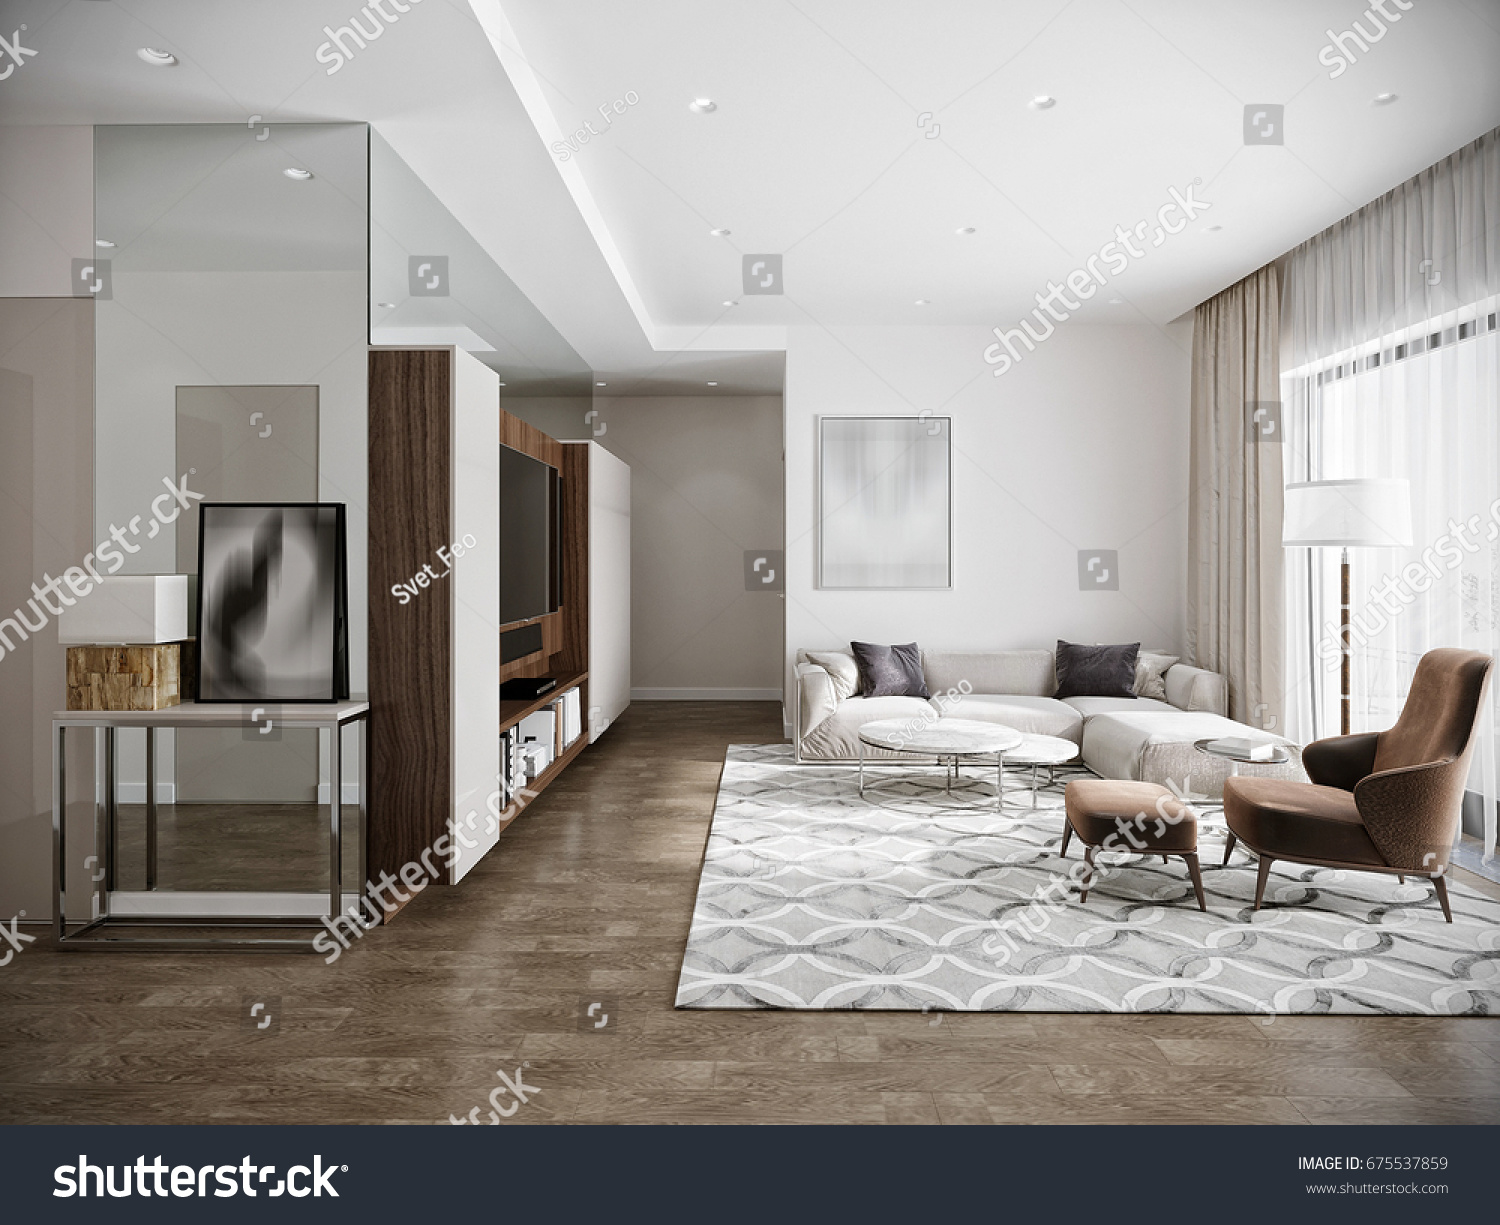 Modern Urban Contemporary Living Room Hotel Stock Illustration 675537859 Shutterstock: contemporary urban living room